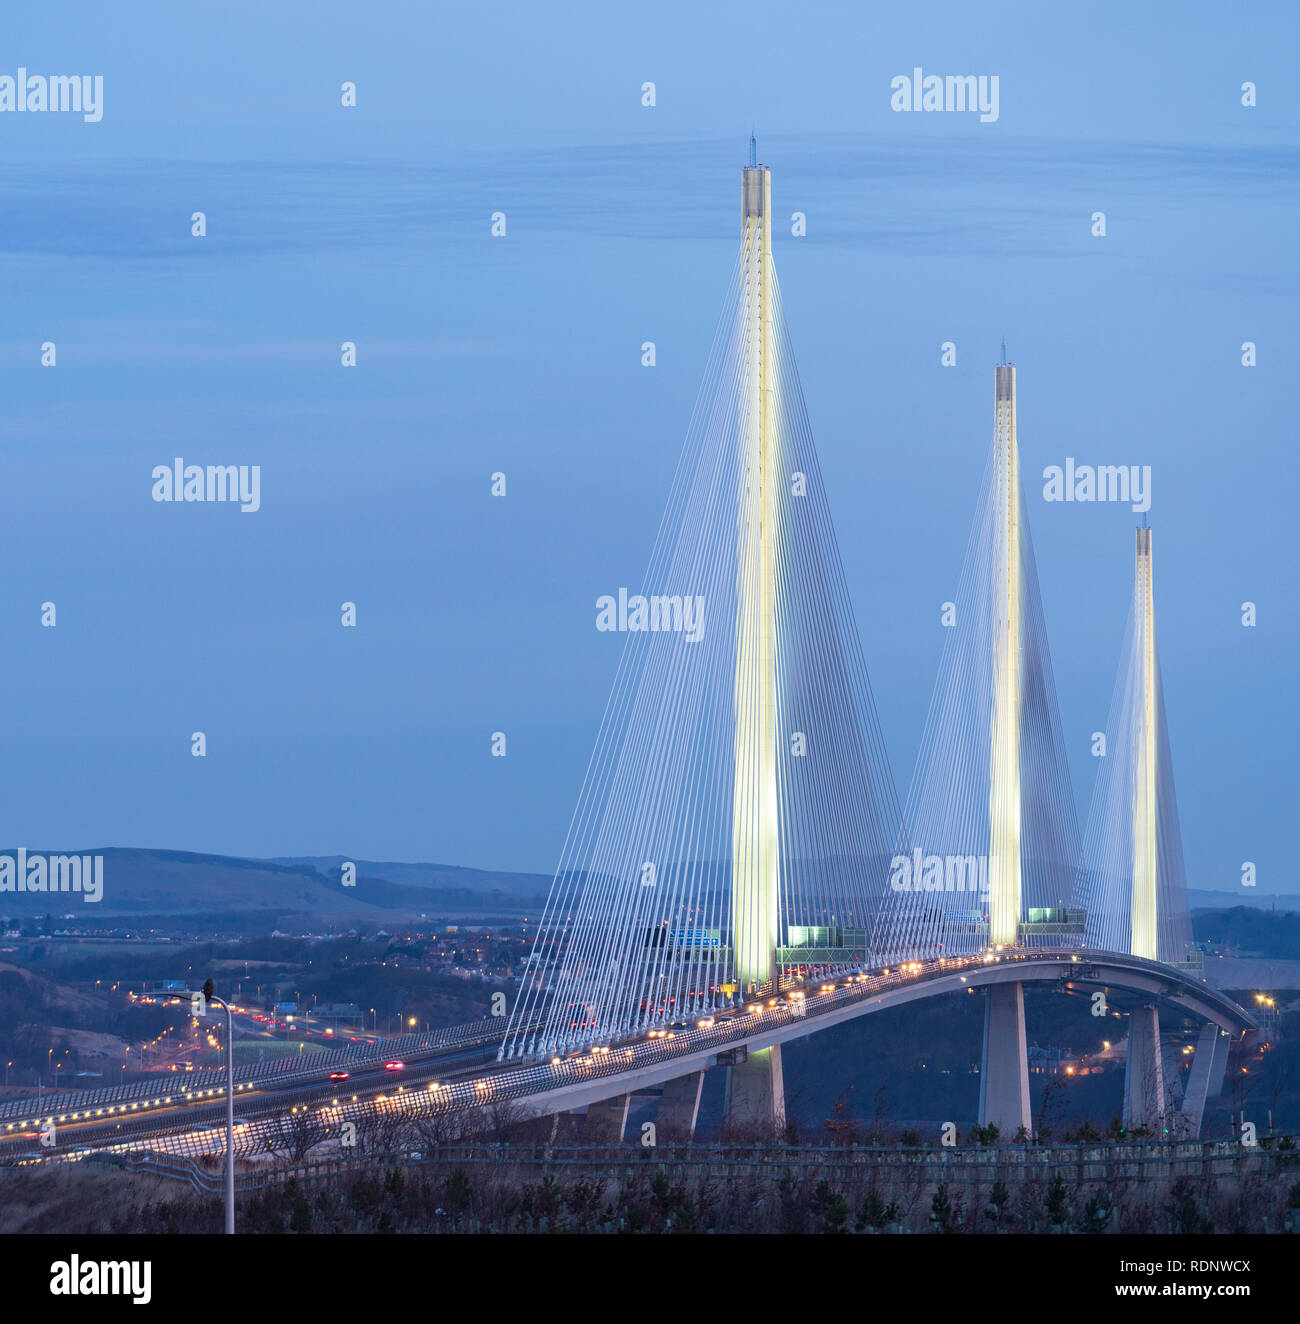 View at sunrise of Queensferry Crossing Bridge spanning the Firth Of Forth river at South Queensferry in Scotland, UK - Stock Image